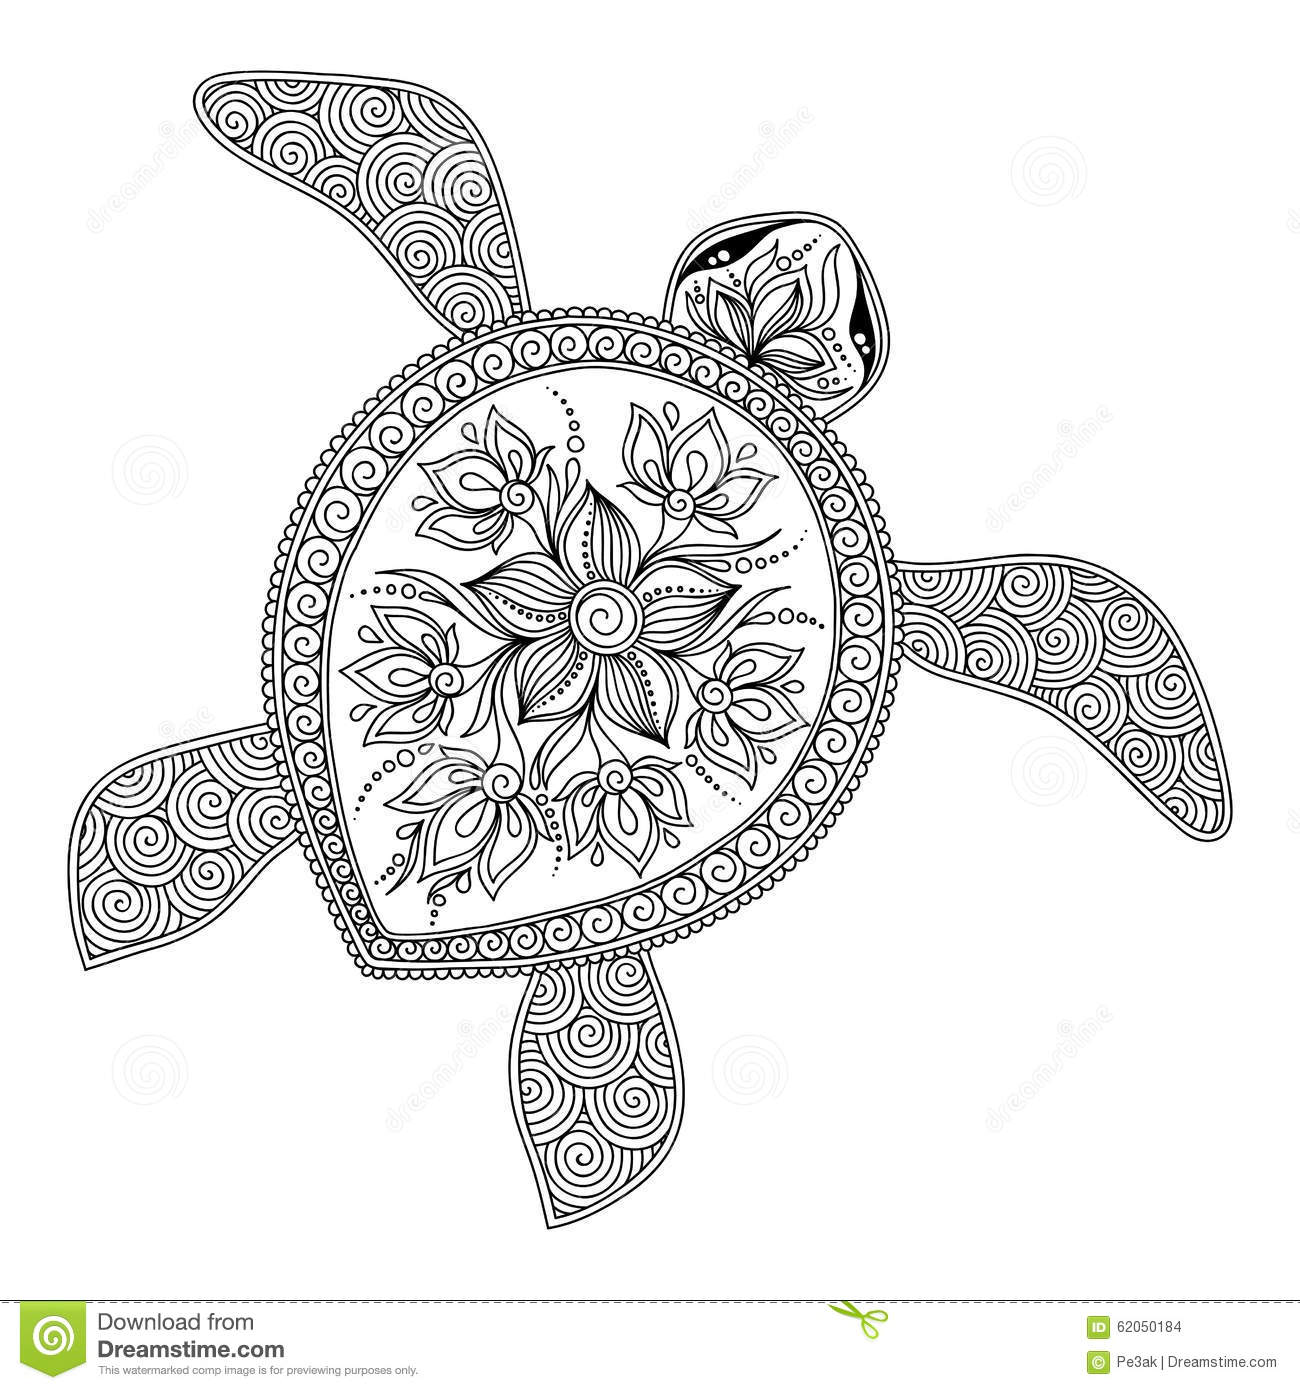 graphical coloring pages - photo#18